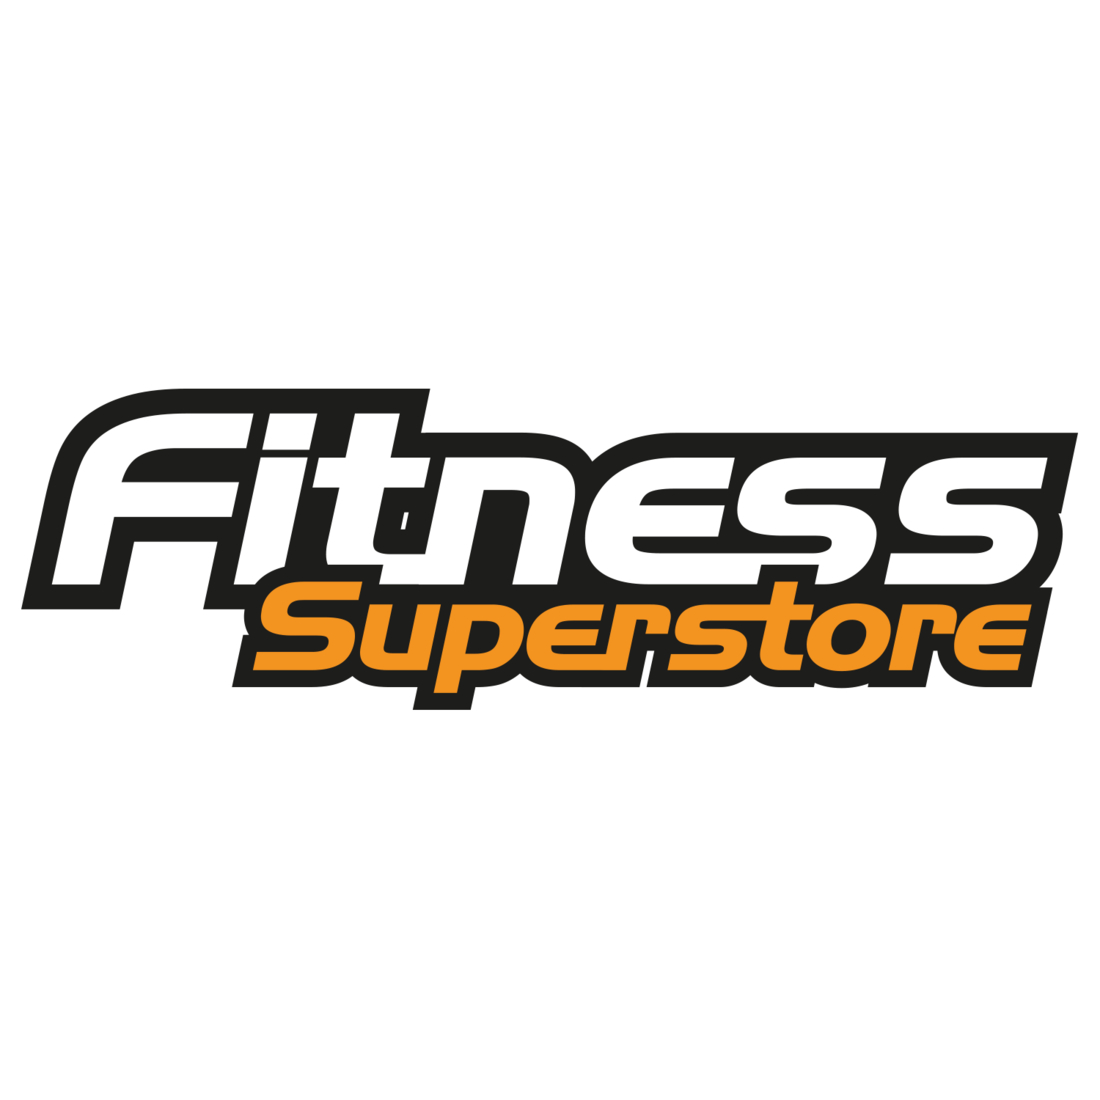 E920 Upper Body Ergometer (Slider Arms